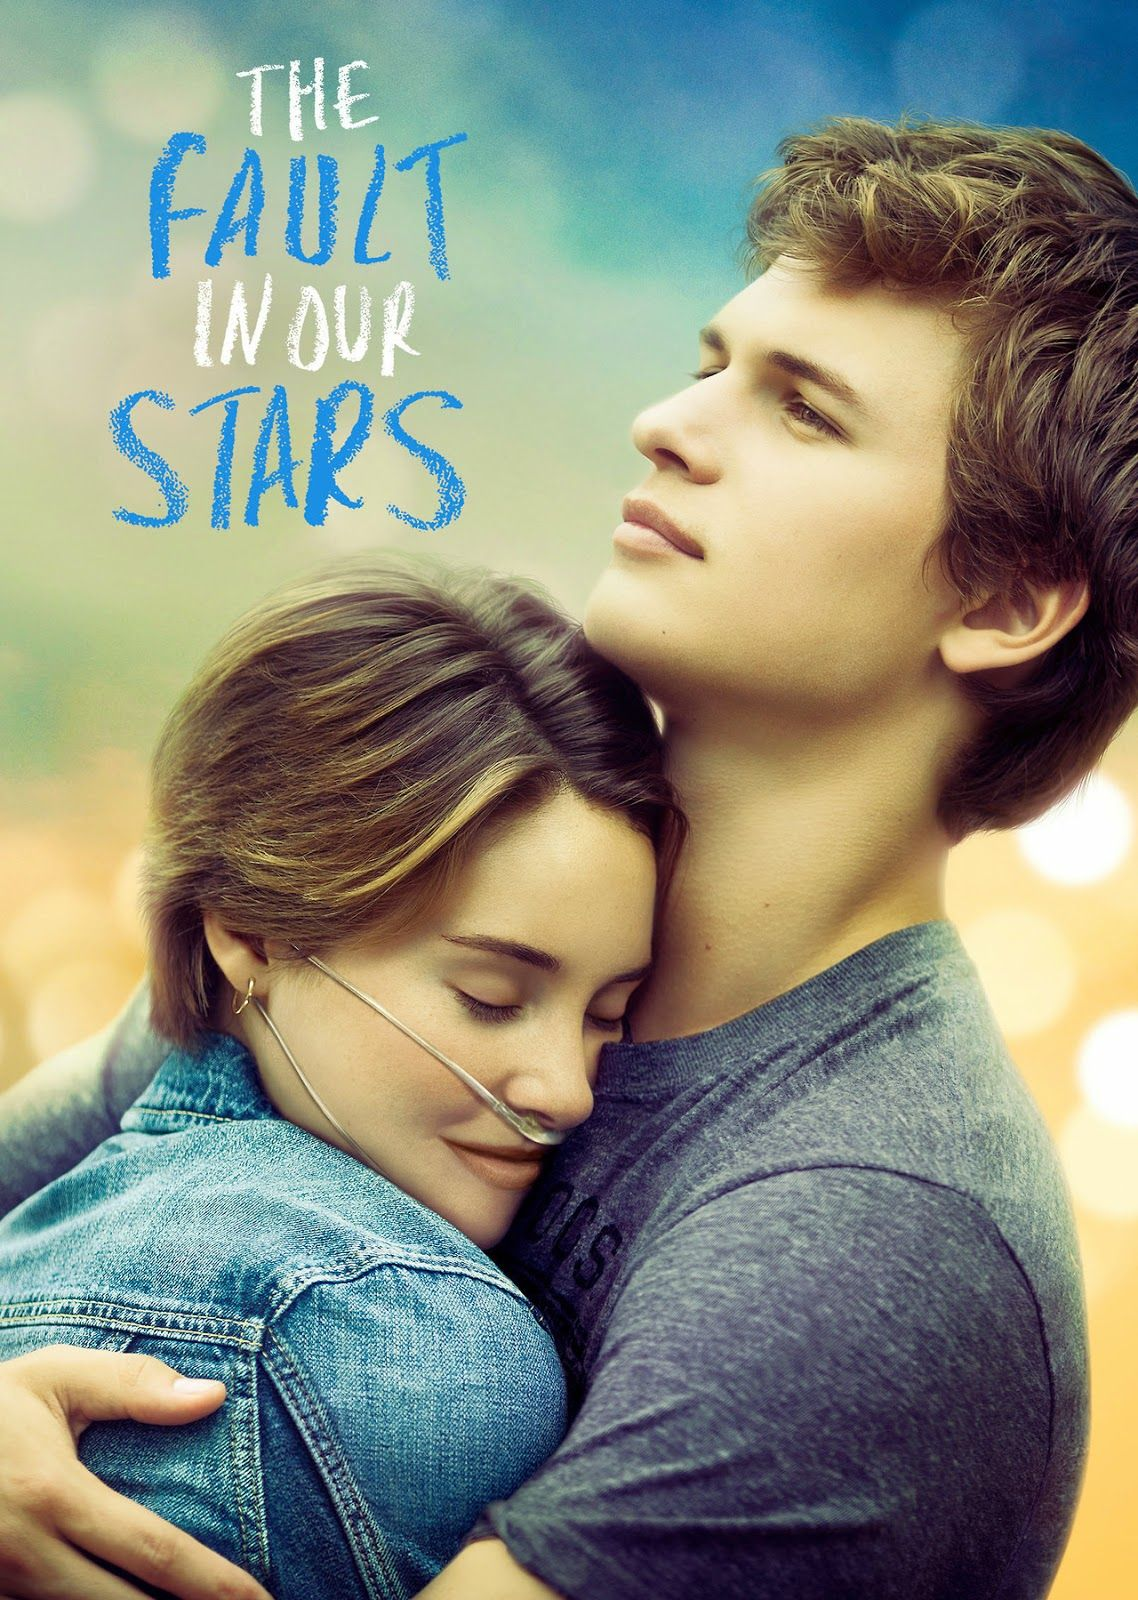 Popular Wallpaper Movie The Fault In Our Stars - 7cc5c46985cf565930027c51e700ba94  You Should Have_621583.jpg